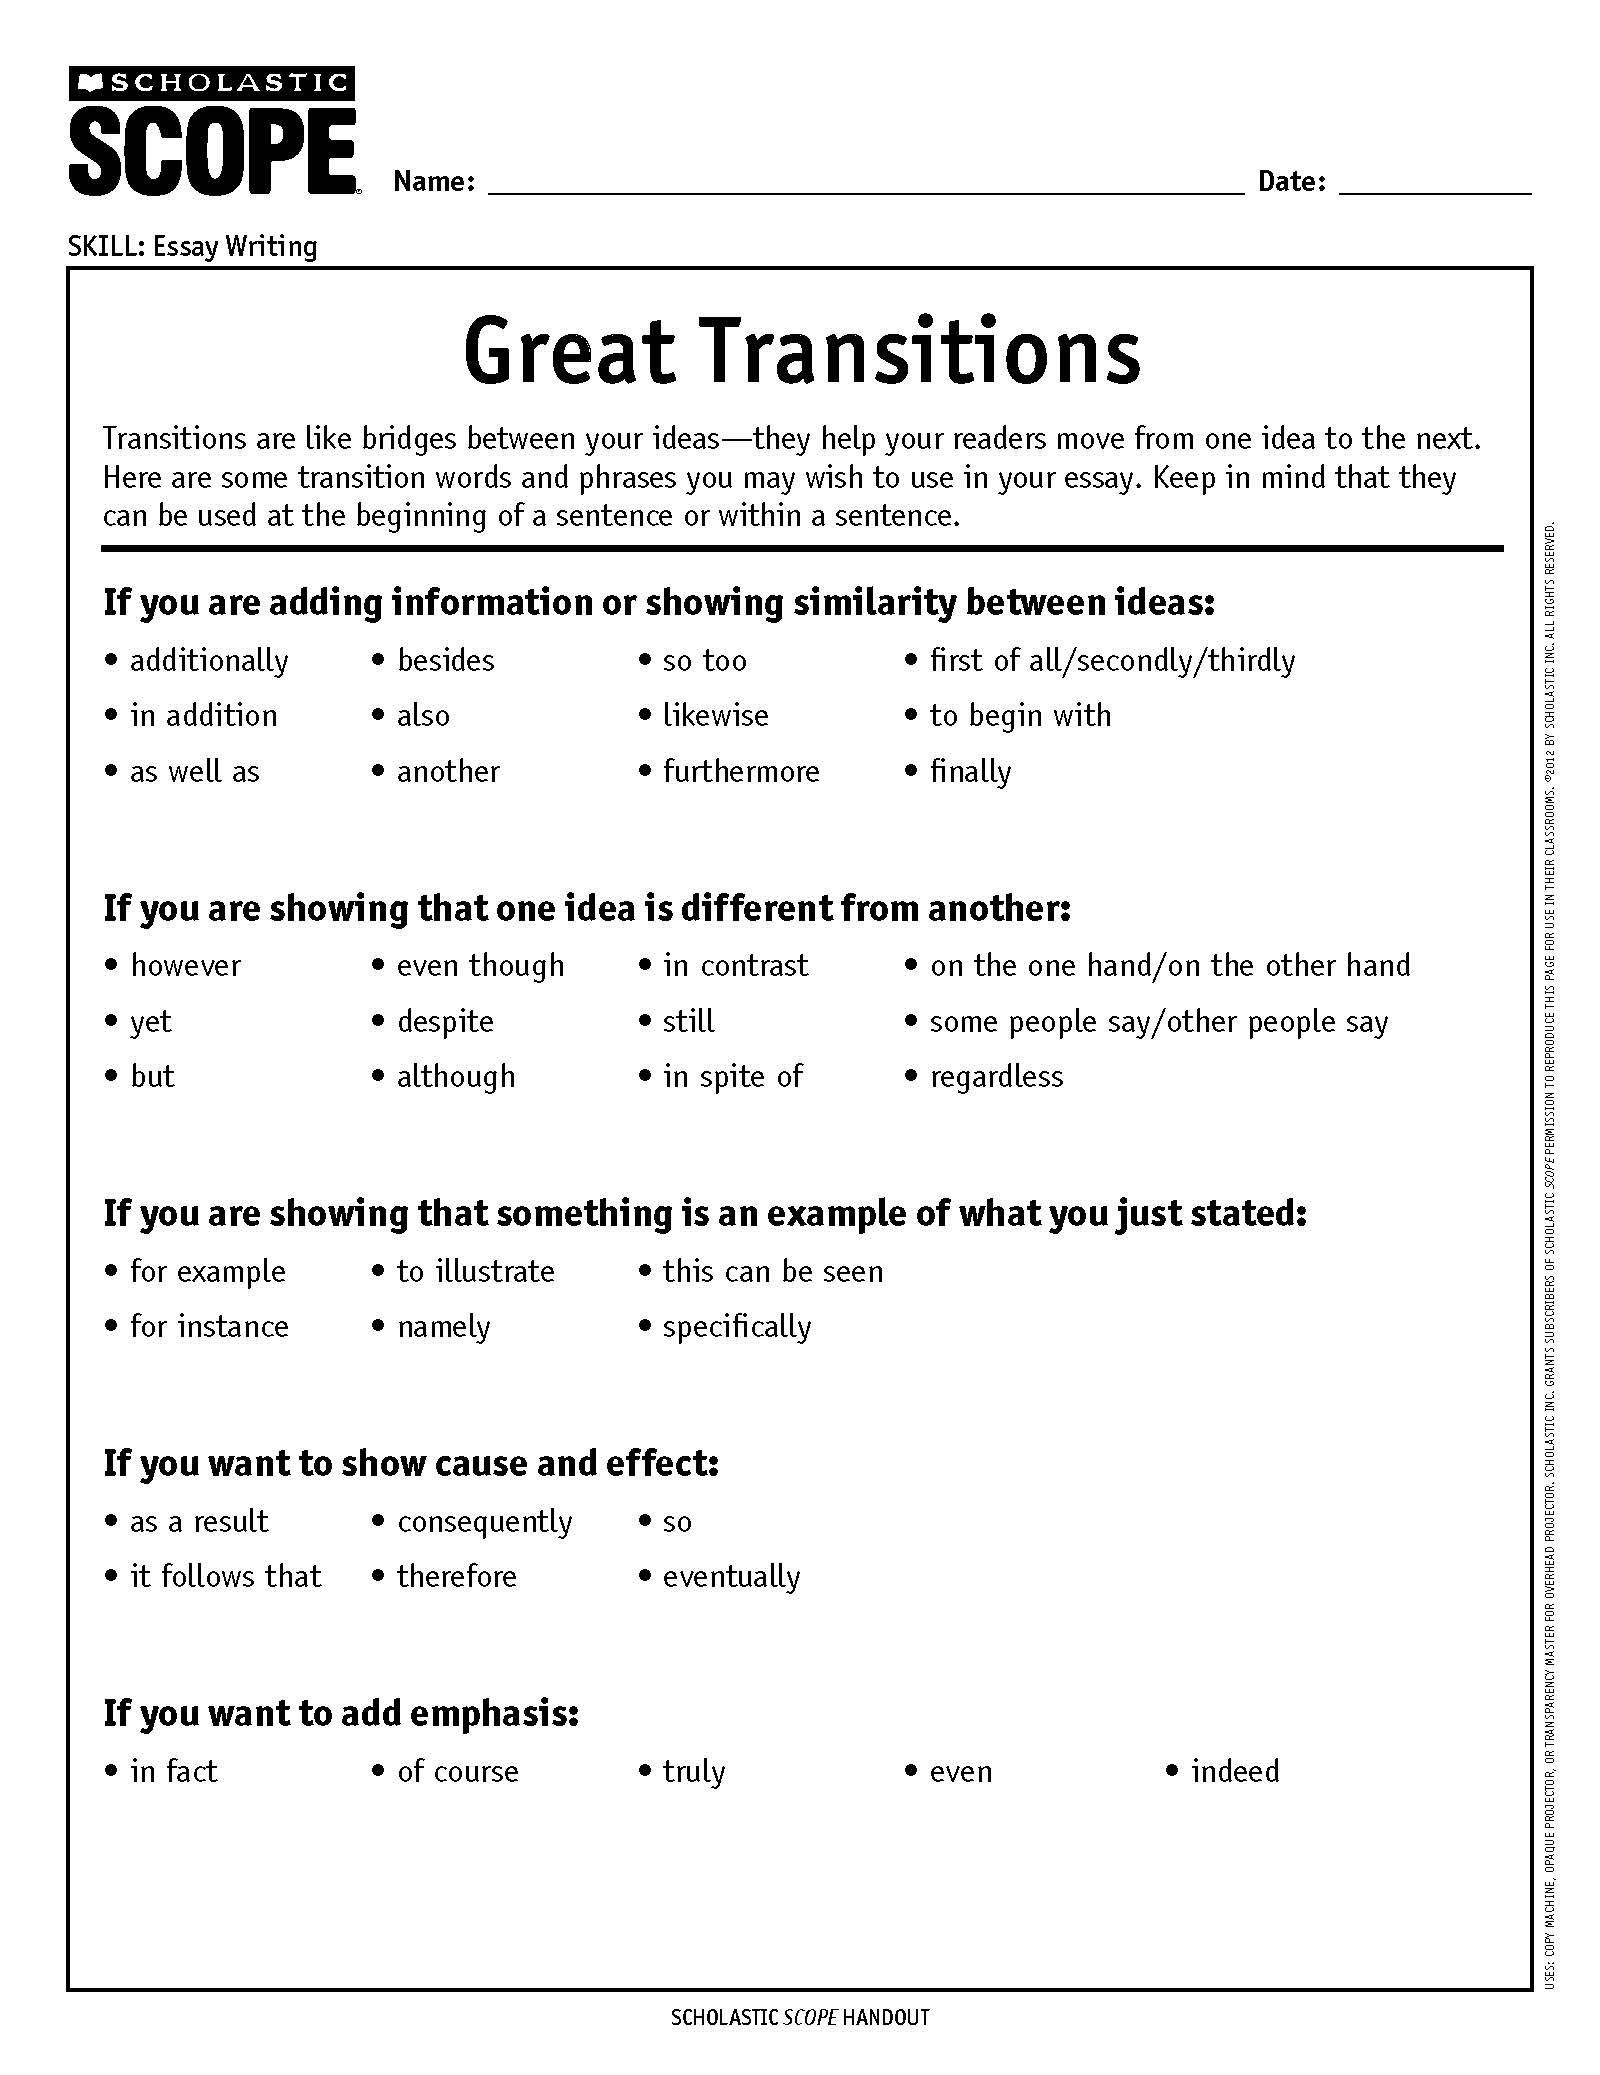 Transition Words Worksheet 3rd Grade How to Choose the Perfect Transition Word or Phrase